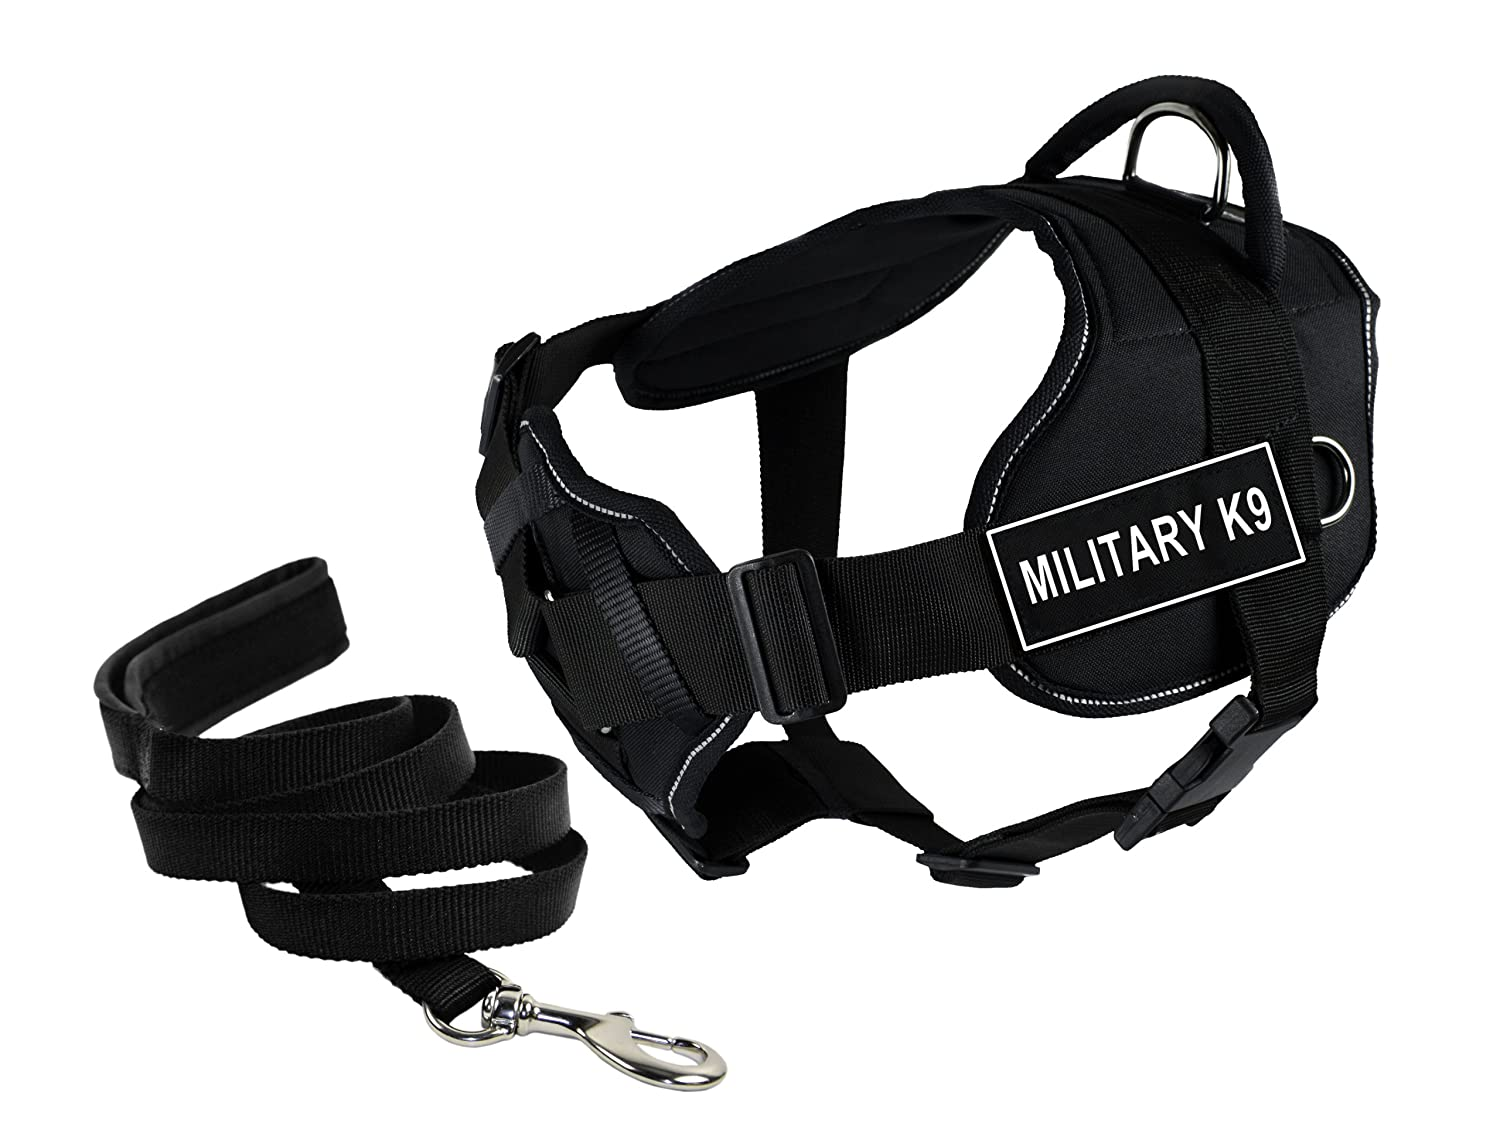 Dean & Tyler Bundle of 22 to 27-Inch DT Fun Harness with Chest Support and 6-Feet Stainless Snap Padded Puppy Leash, Military K9, Black with Reflective Trim